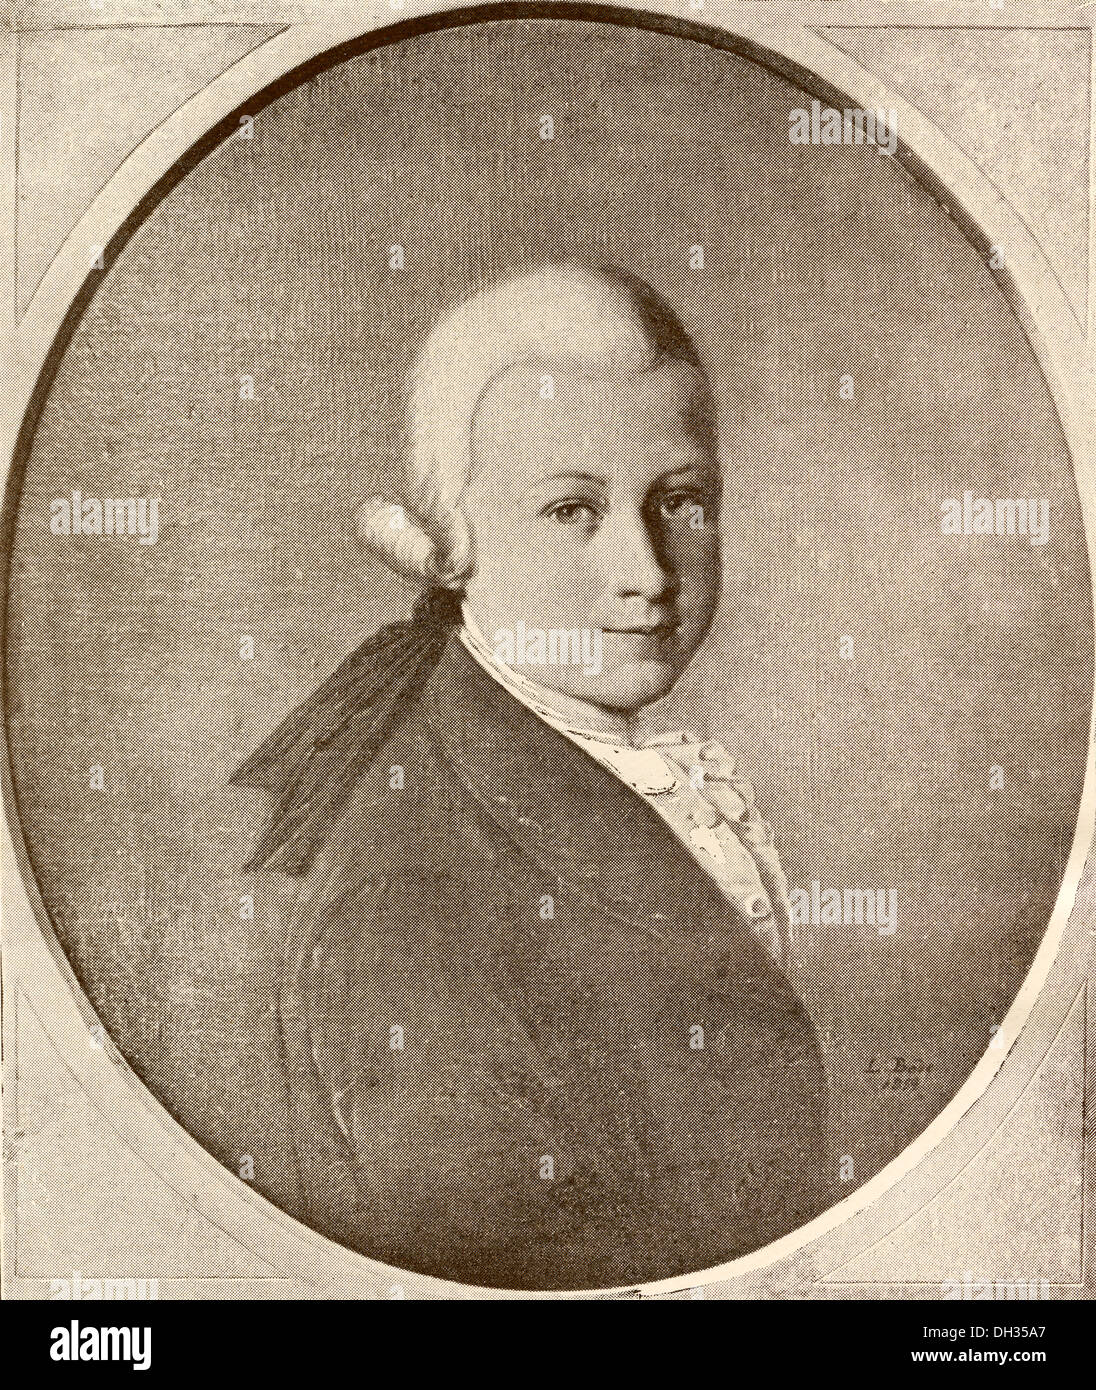 Wolfgang Amadeus Mozart, 1756 - 1791. Austrian composer and musician as a child. - Stock Image